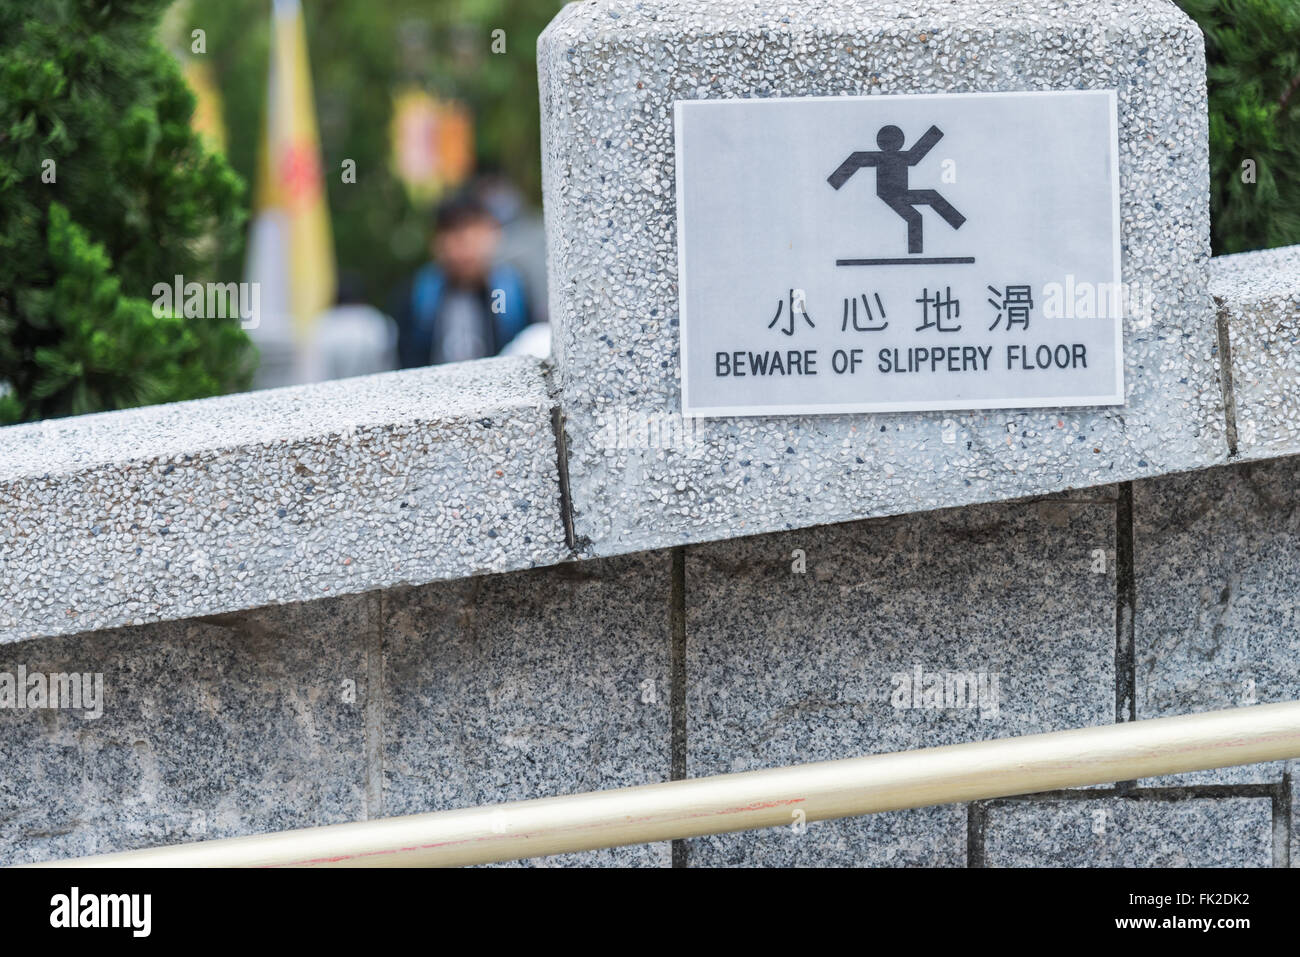 Beware of Slippery floor sign on stone stair - Stock Image